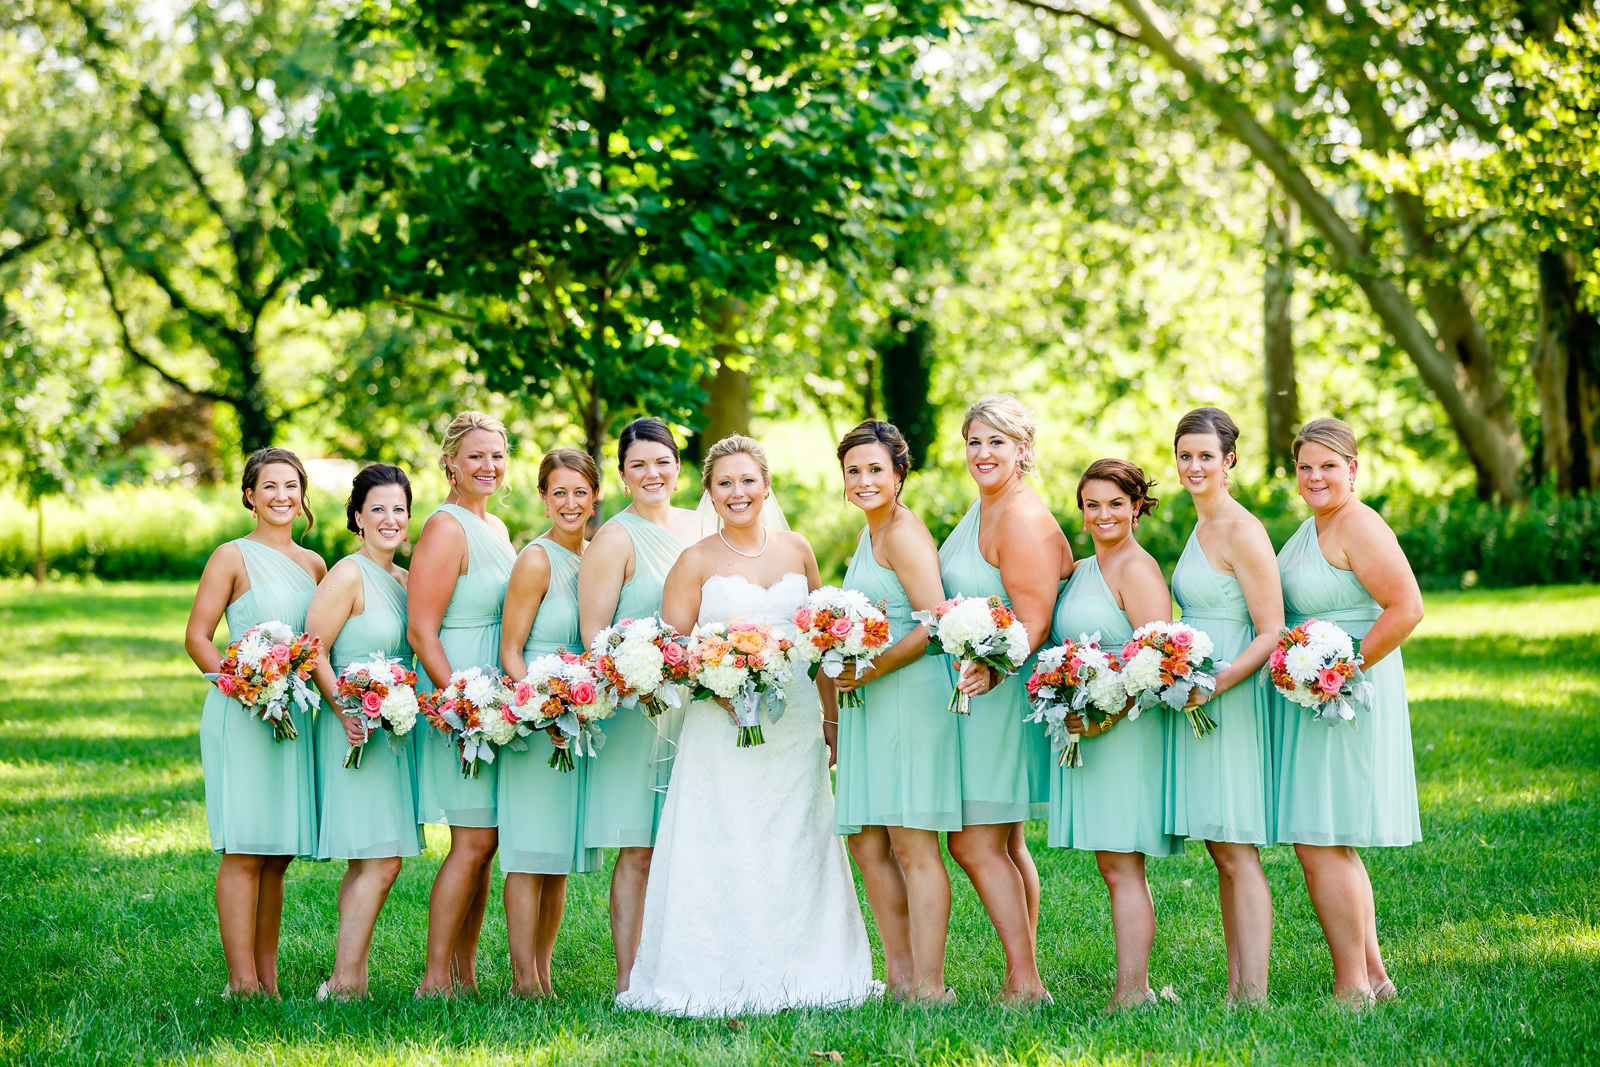 Forest Park Wedding Party Photos with St. Louis Wedding Photographers by Oldani Photography 1.jpg